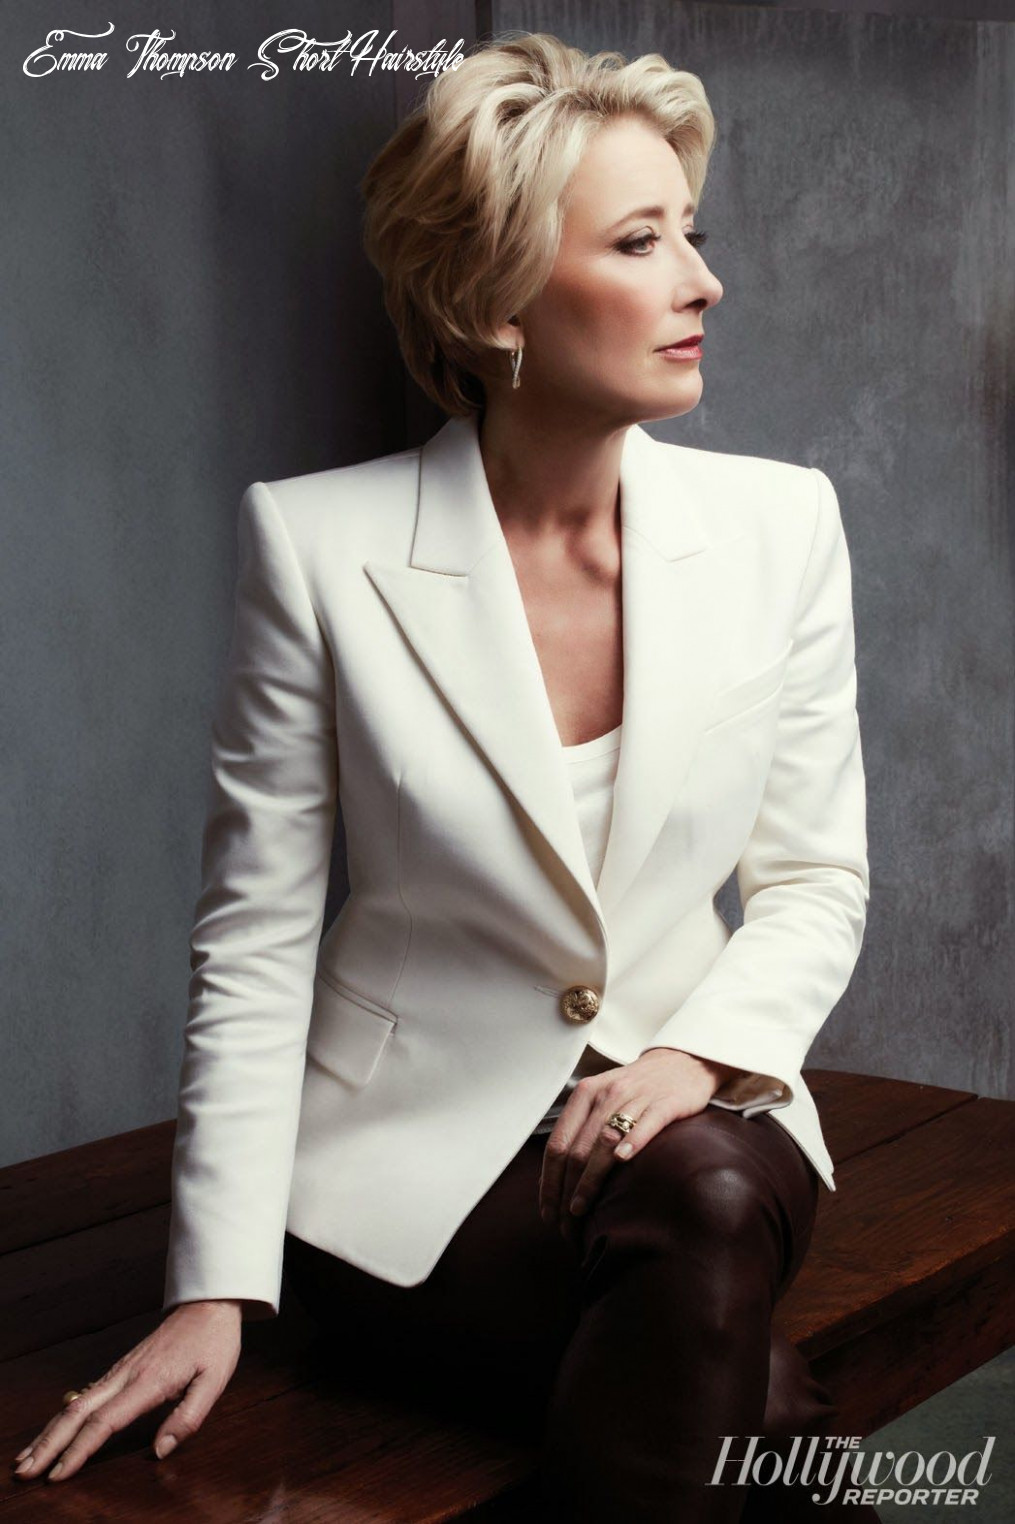 Emma Thompson (With images)   Short hairstyles for women, Short ...